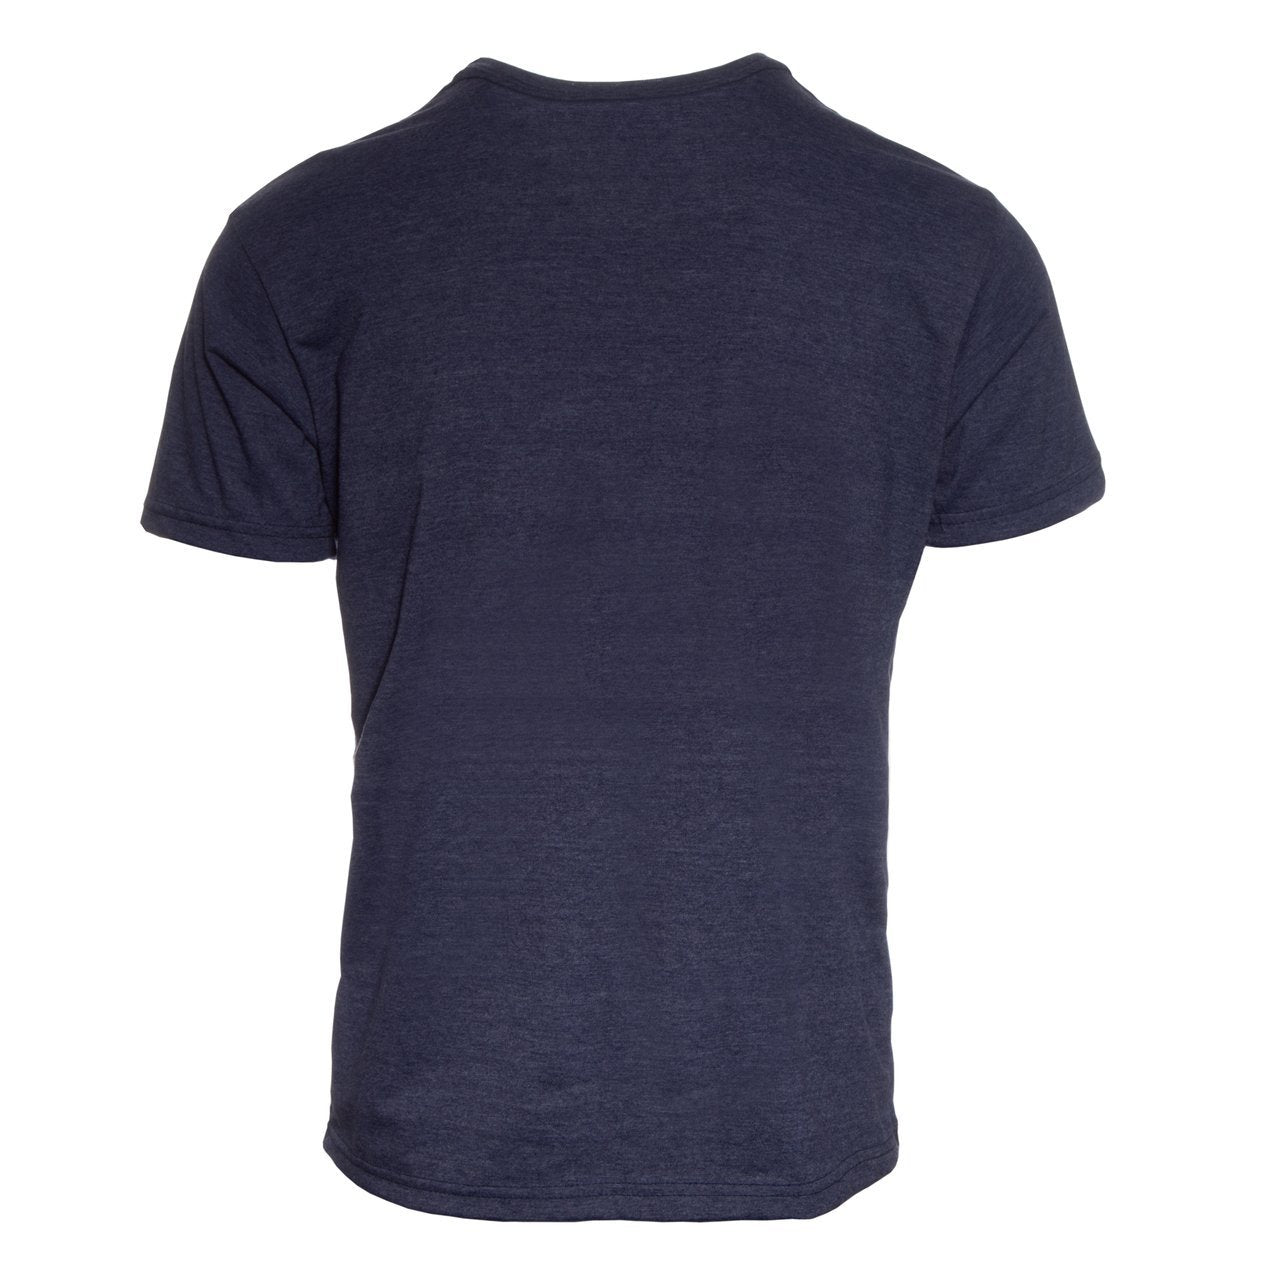 PC100NV Eco REPREVE® Recycled Polyester/Cotton Crew T-Shirt - Navy